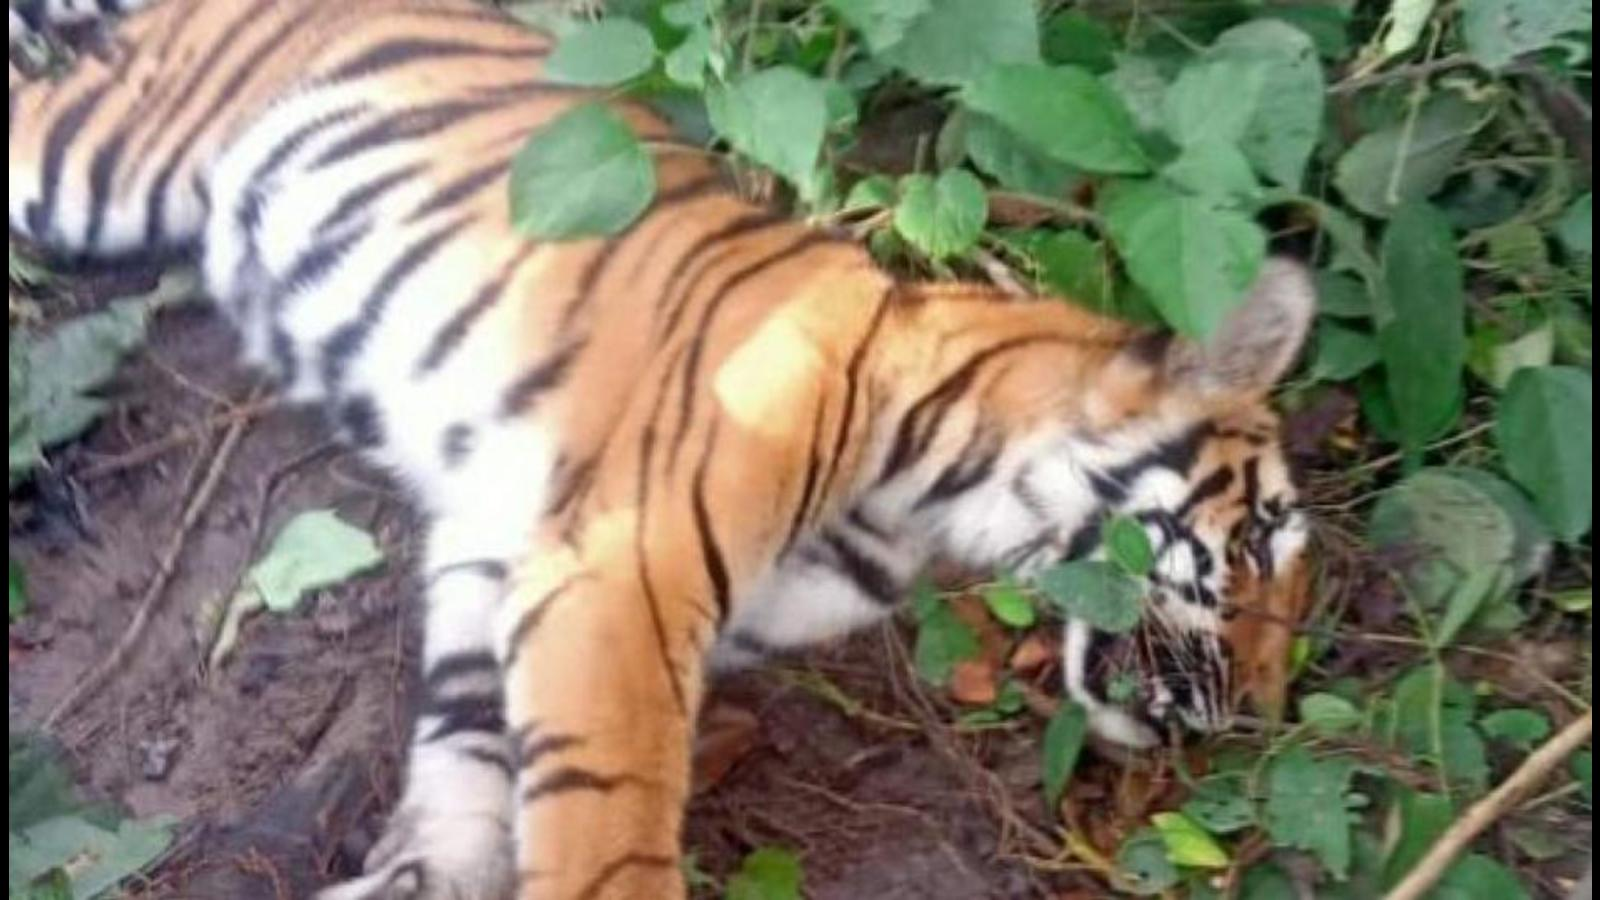 Carcass of tigress found in Dudhwa Tiger Reserve area